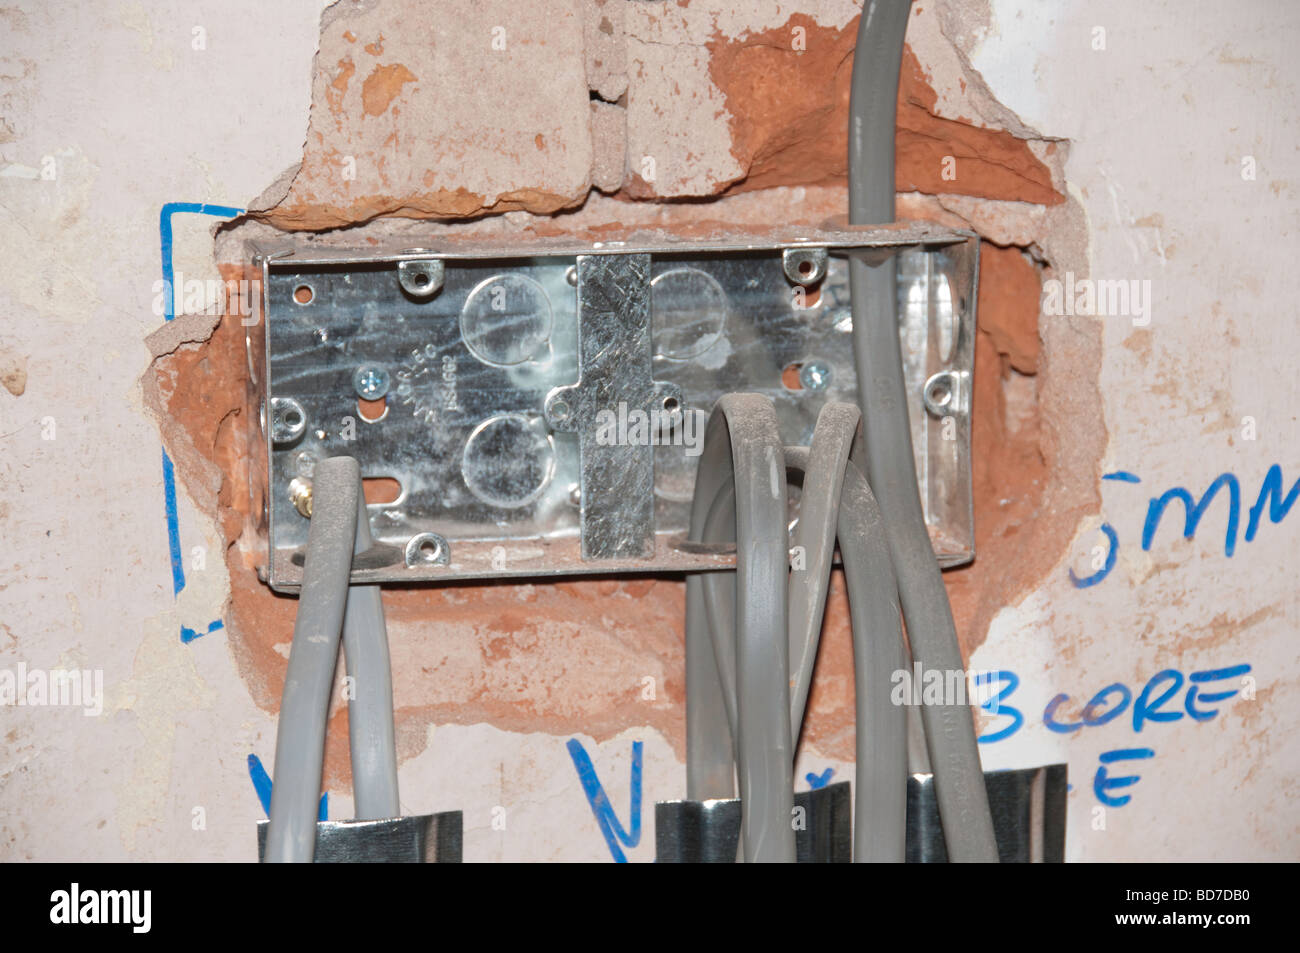 New electrical wiring in a house renovation Stock Photo: 25365060 ...